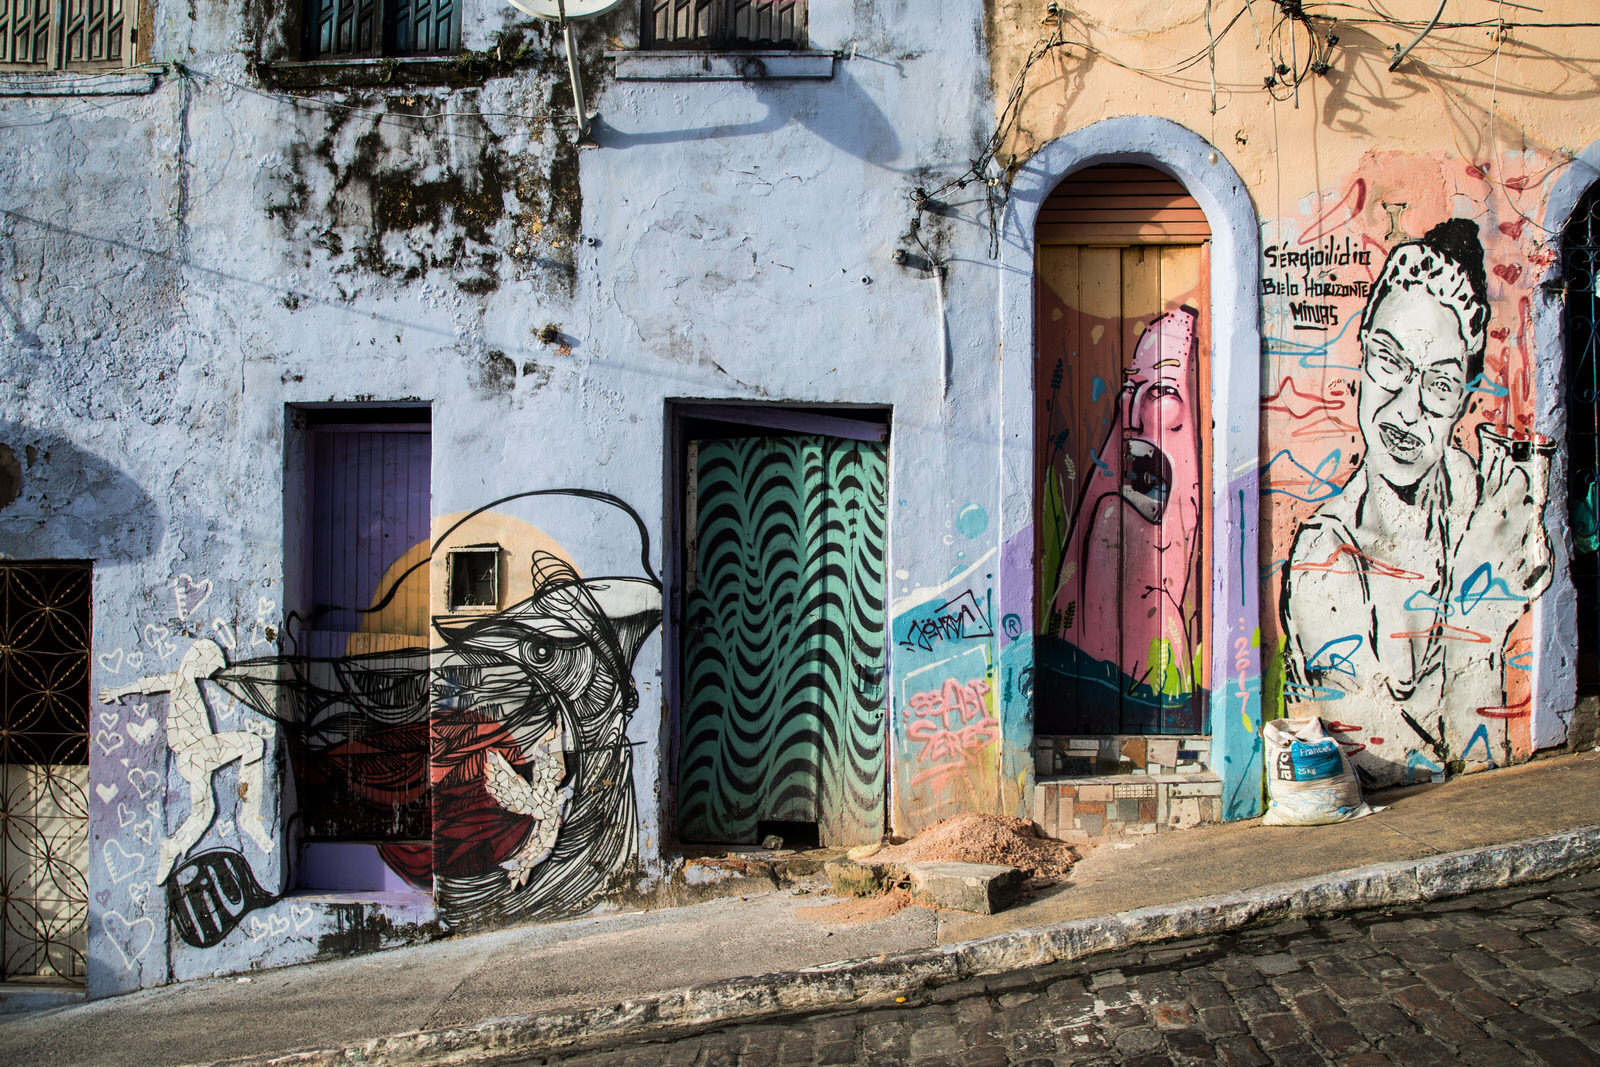 Residents of the community have collectively mobilised to rehabilitate the  Ladeira , reconstructing collapsed mansions and painting decaying façades with colourful graffiti referencing the African Diaspora.